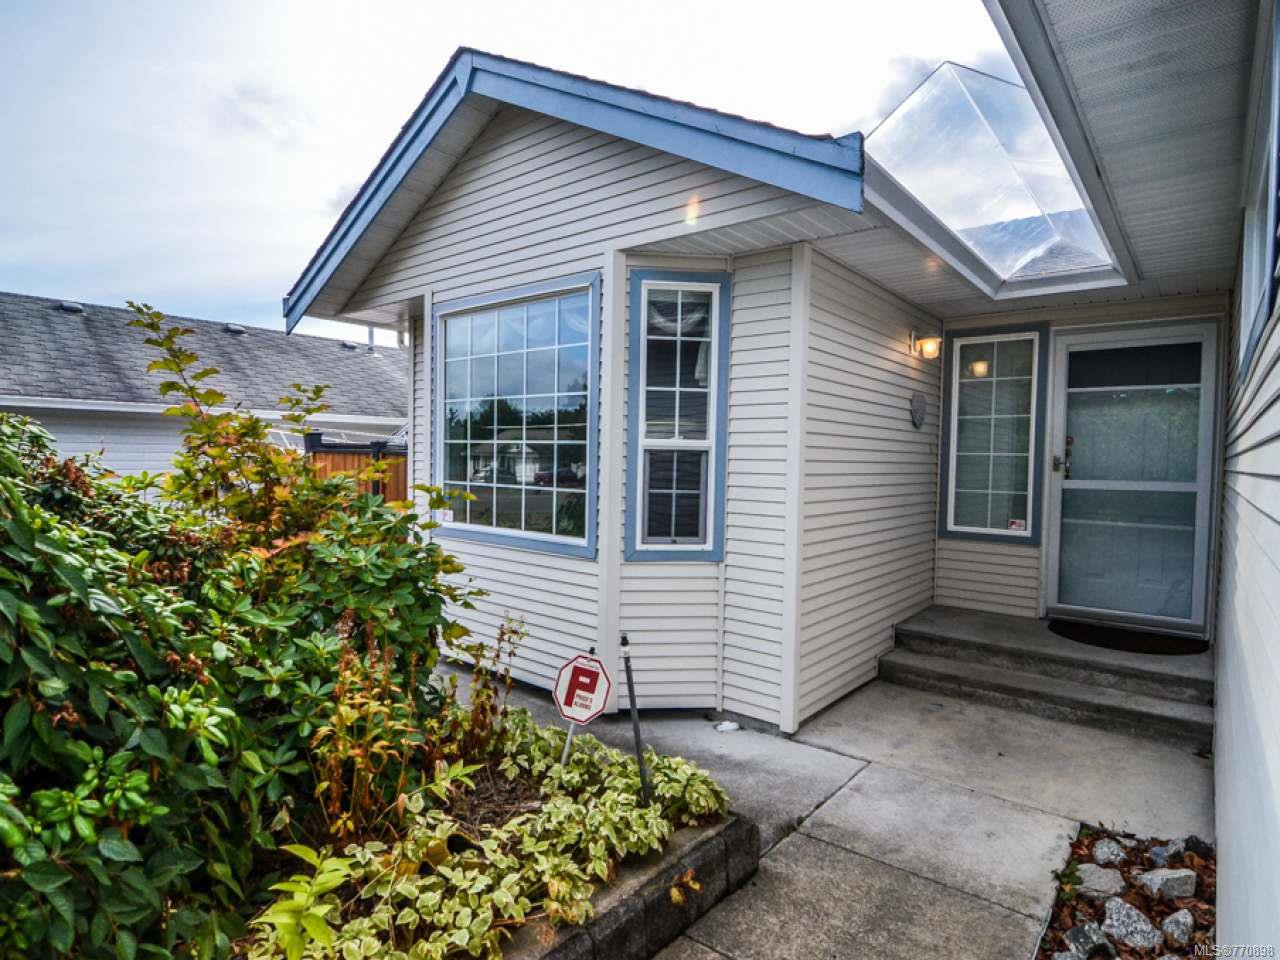 Photo 4: Photos: 135 Colorado Dr in CAMPBELL RIVER: CR Willow Point House for sale (Campbell River)  : MLS®# 770898